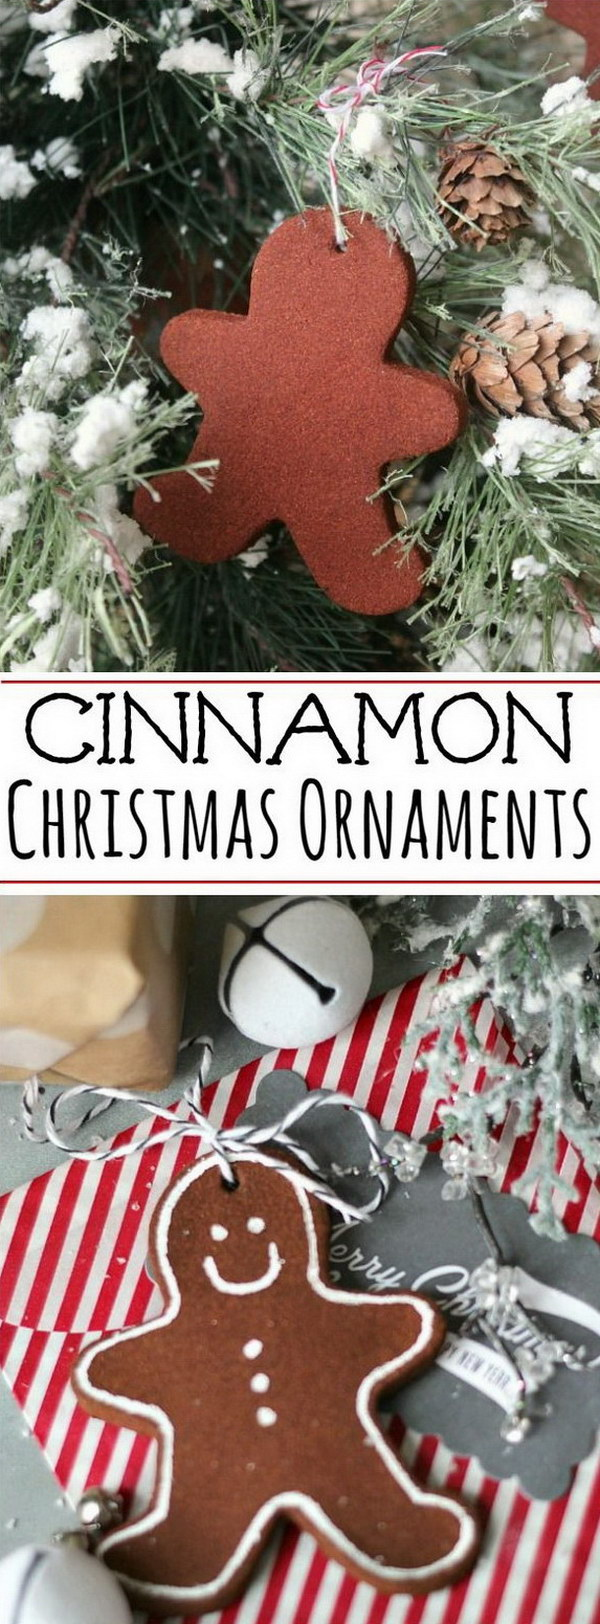 Cinnamon Christmas Ornaments.